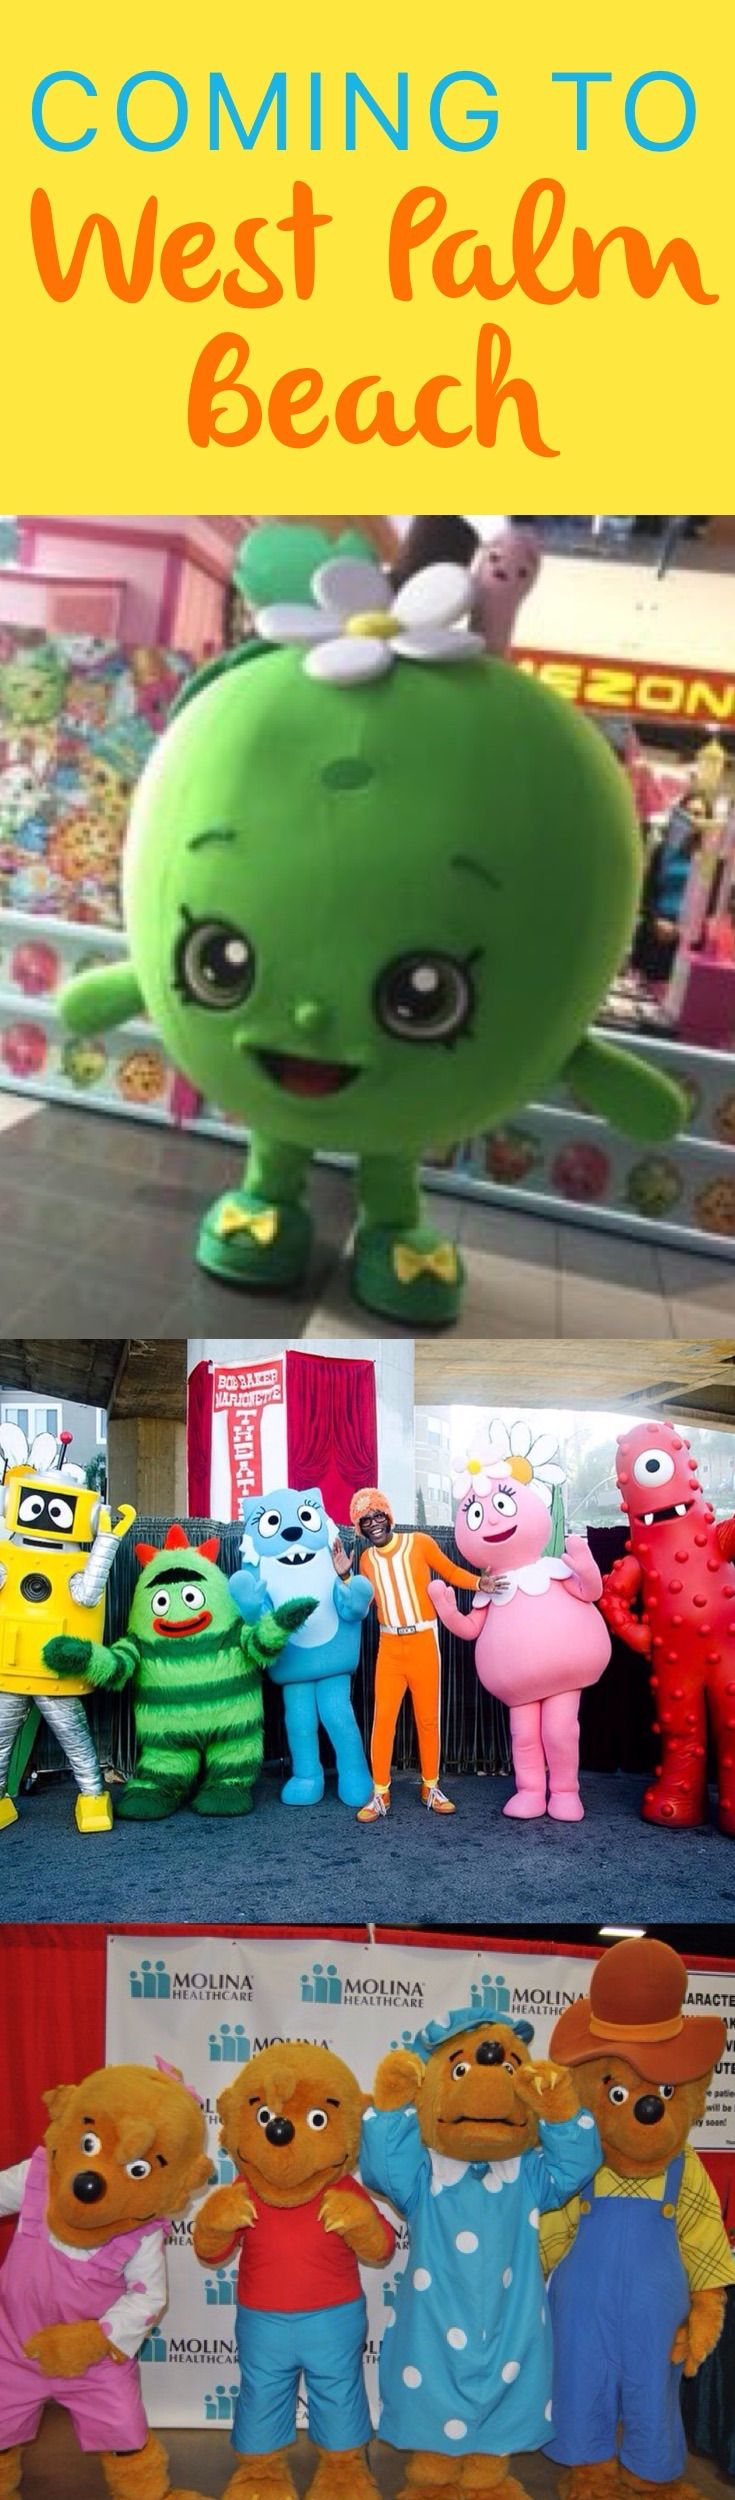 Shopkins will send Apple Blossom and Kooky Cookie to Our Kids World, a two-day, indoor festival happening on August 27th and 28th from 10:00 a.m. to 5:00 p.m at The South Florida Fairgrounds Expo Center.